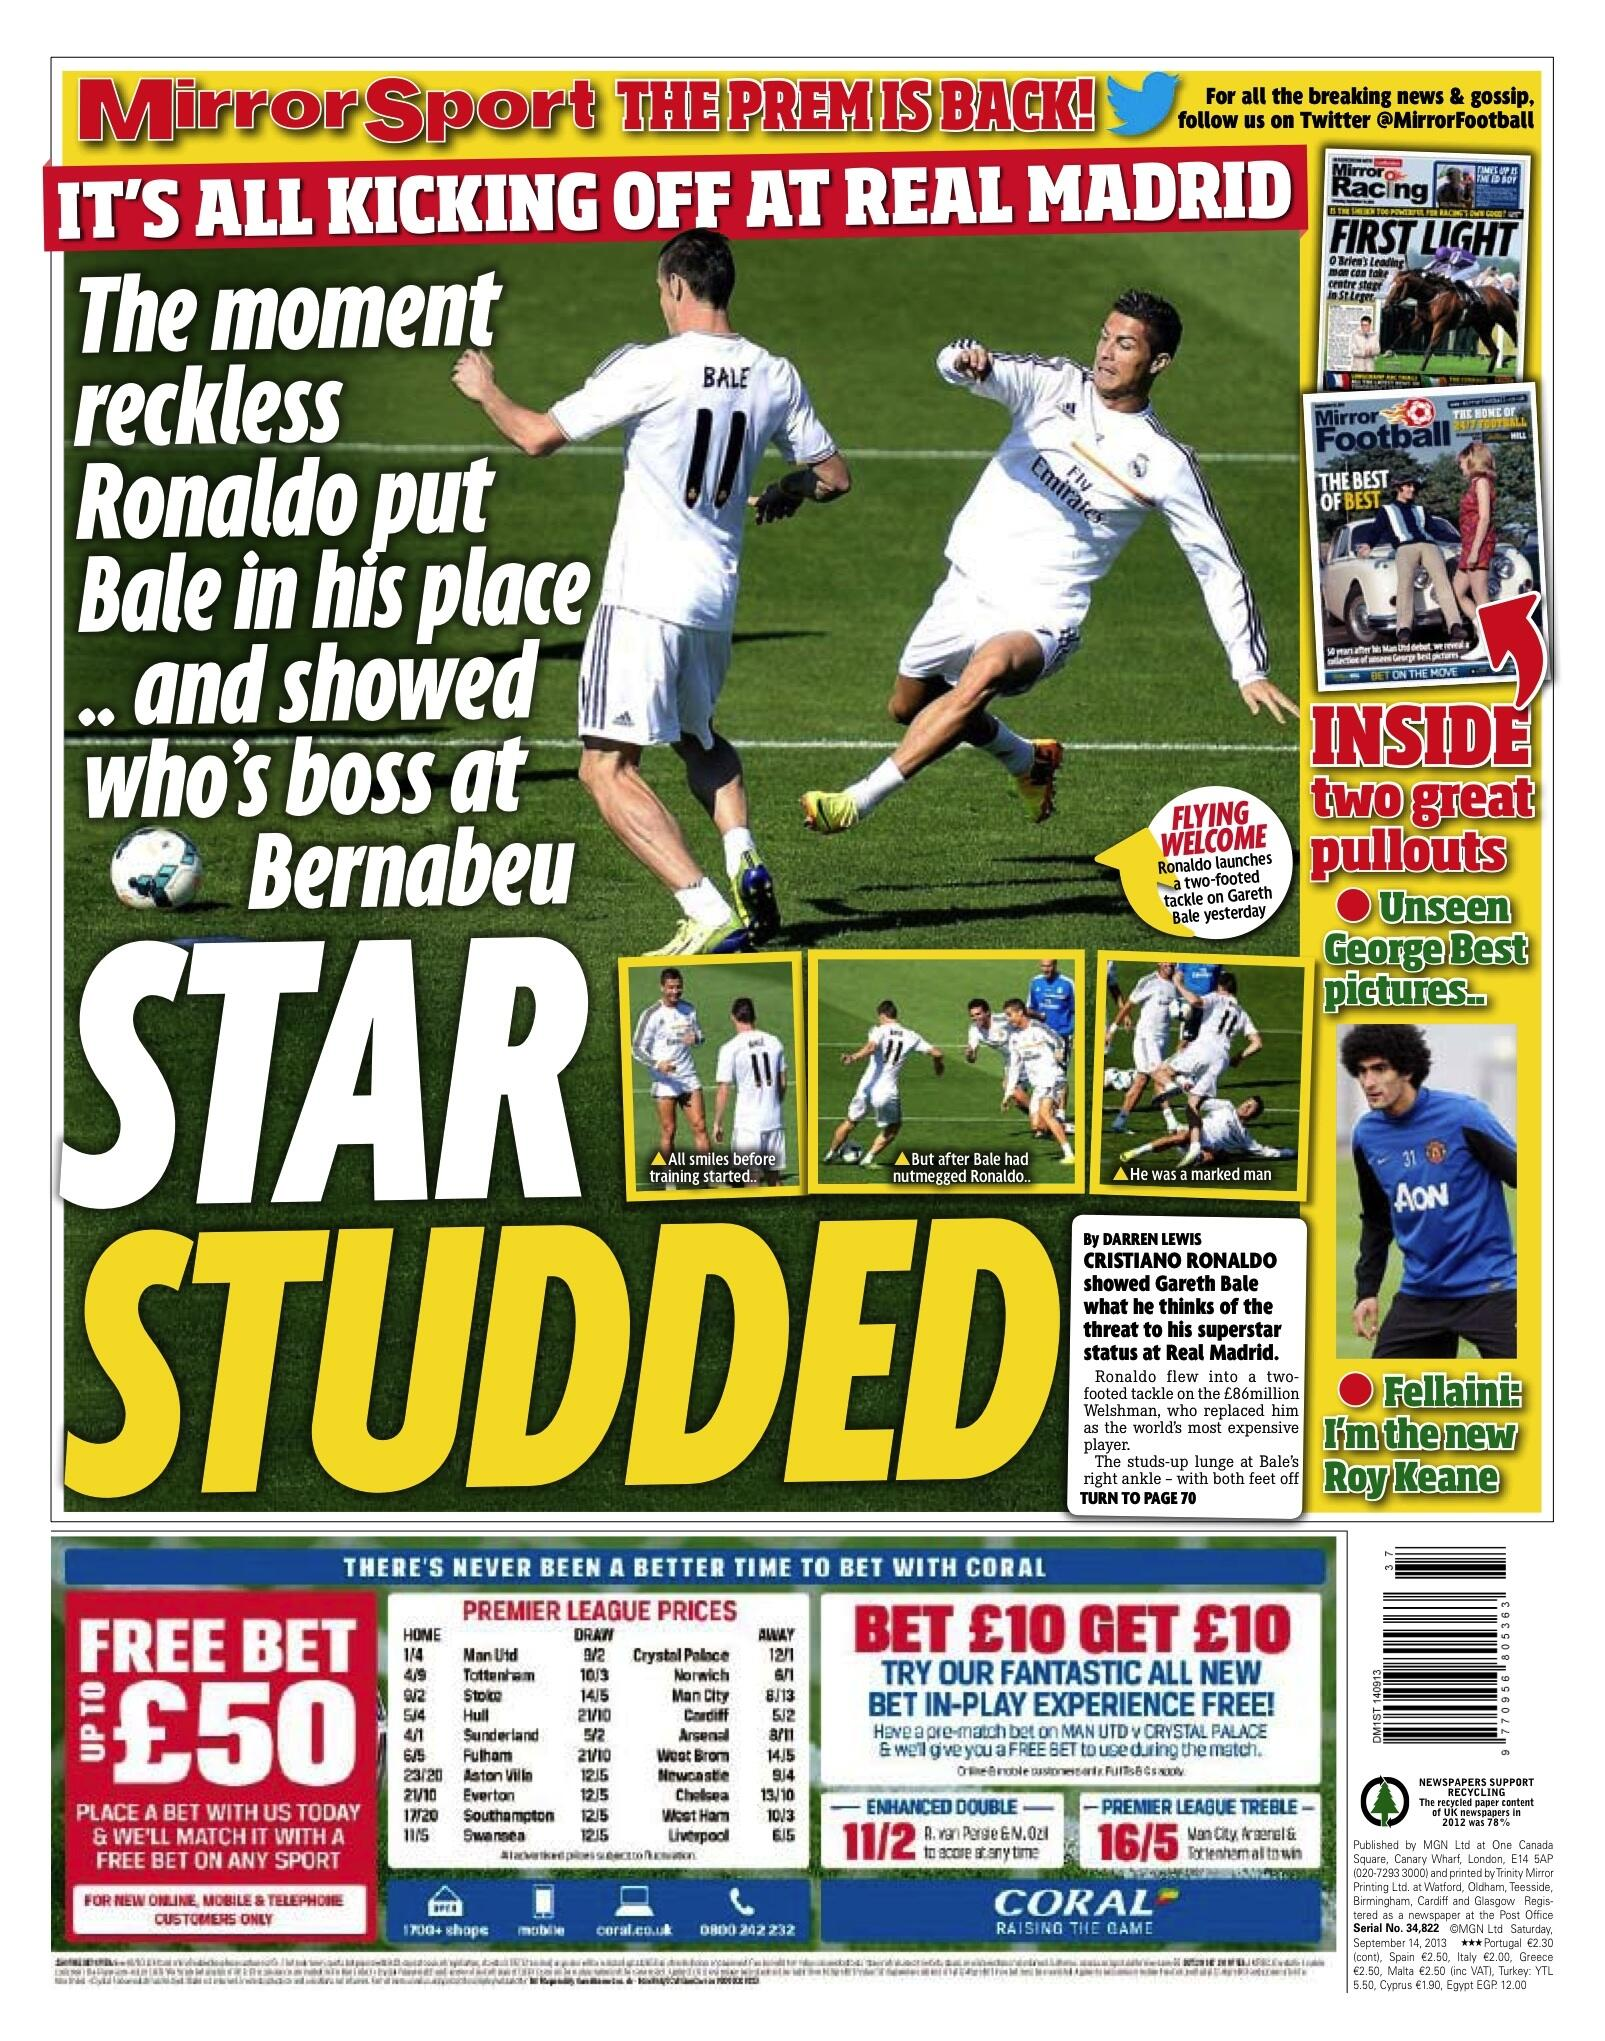 Saturdays Mirror Sport: Star Studded, Ronaldo put Bale in his place